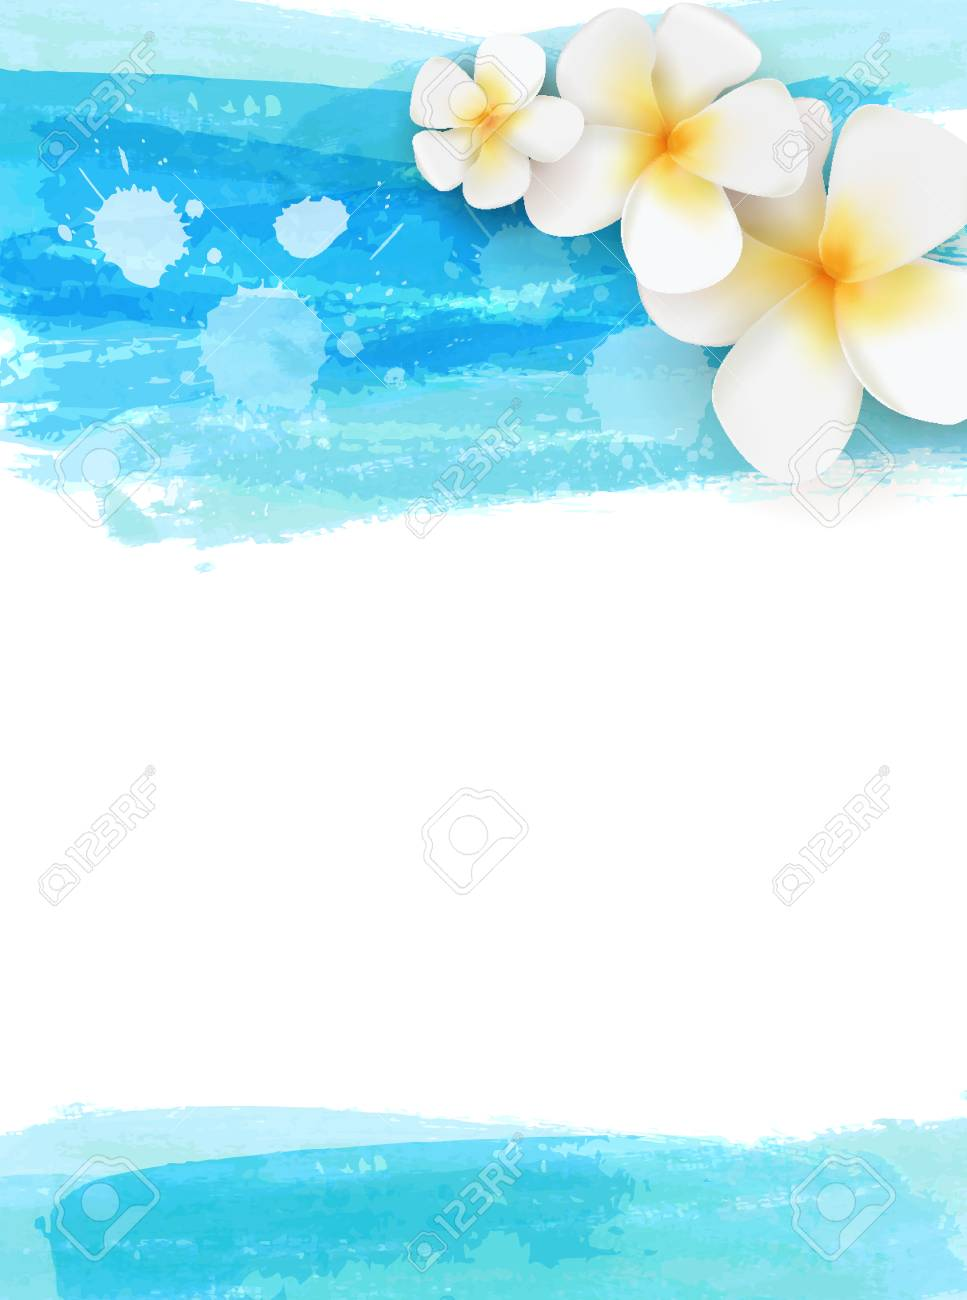 Invitation Template With Plumeria Tropical Flowers On Watercolor